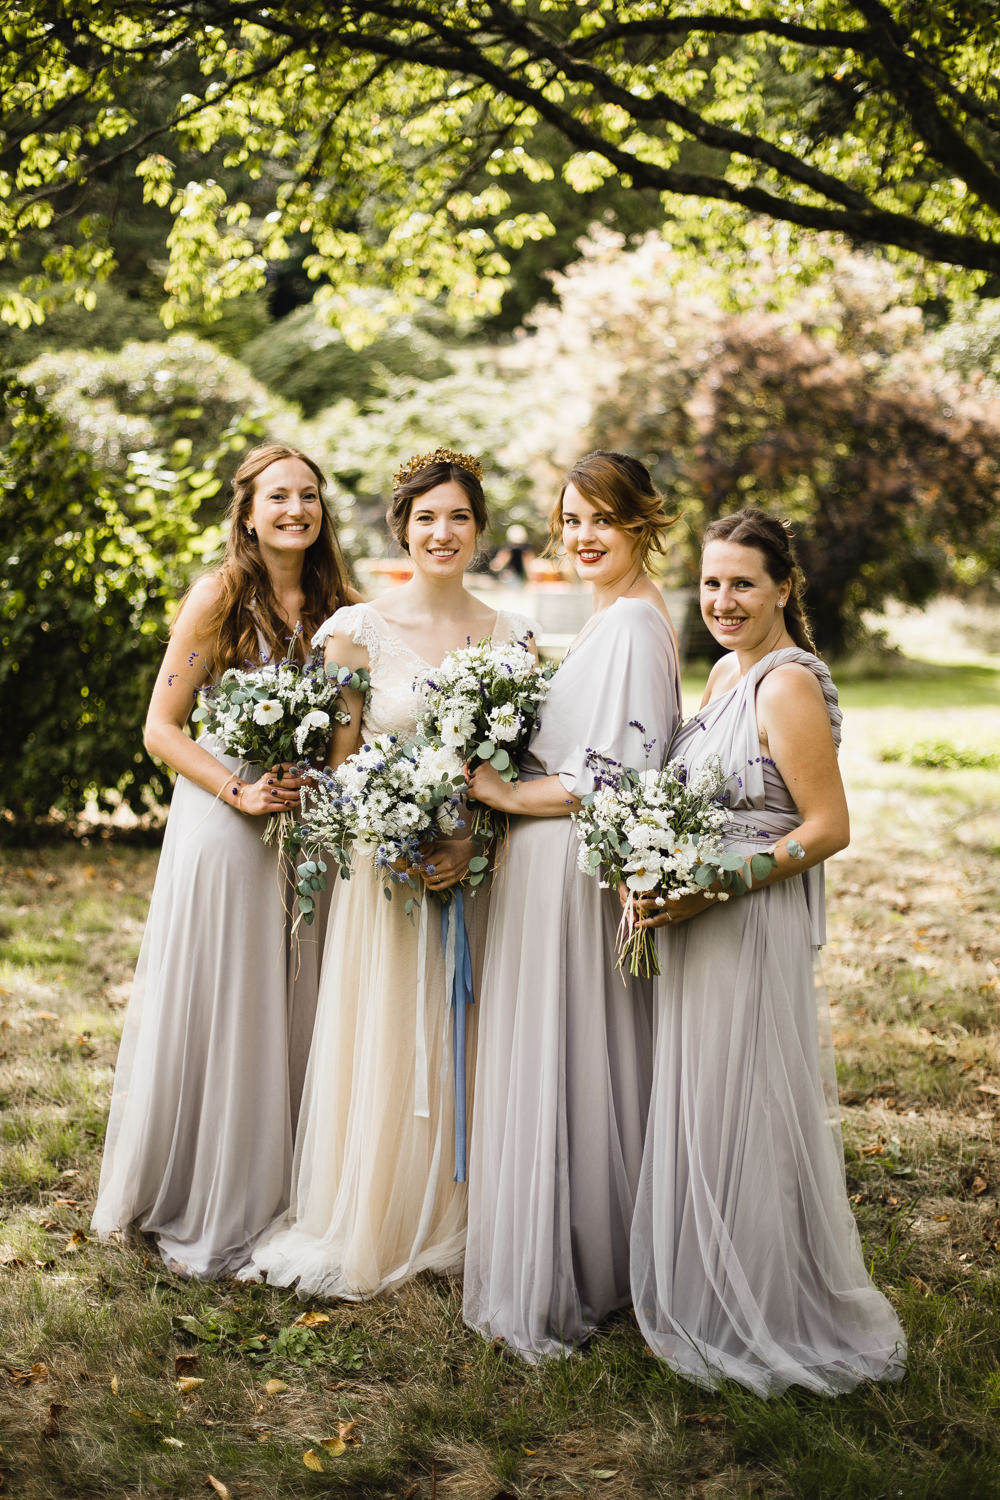 Bridesmaids Long Maxi Dresses Lilac Purple Grey Fun Laughter Relaxed Wedding Chris Barber Photography